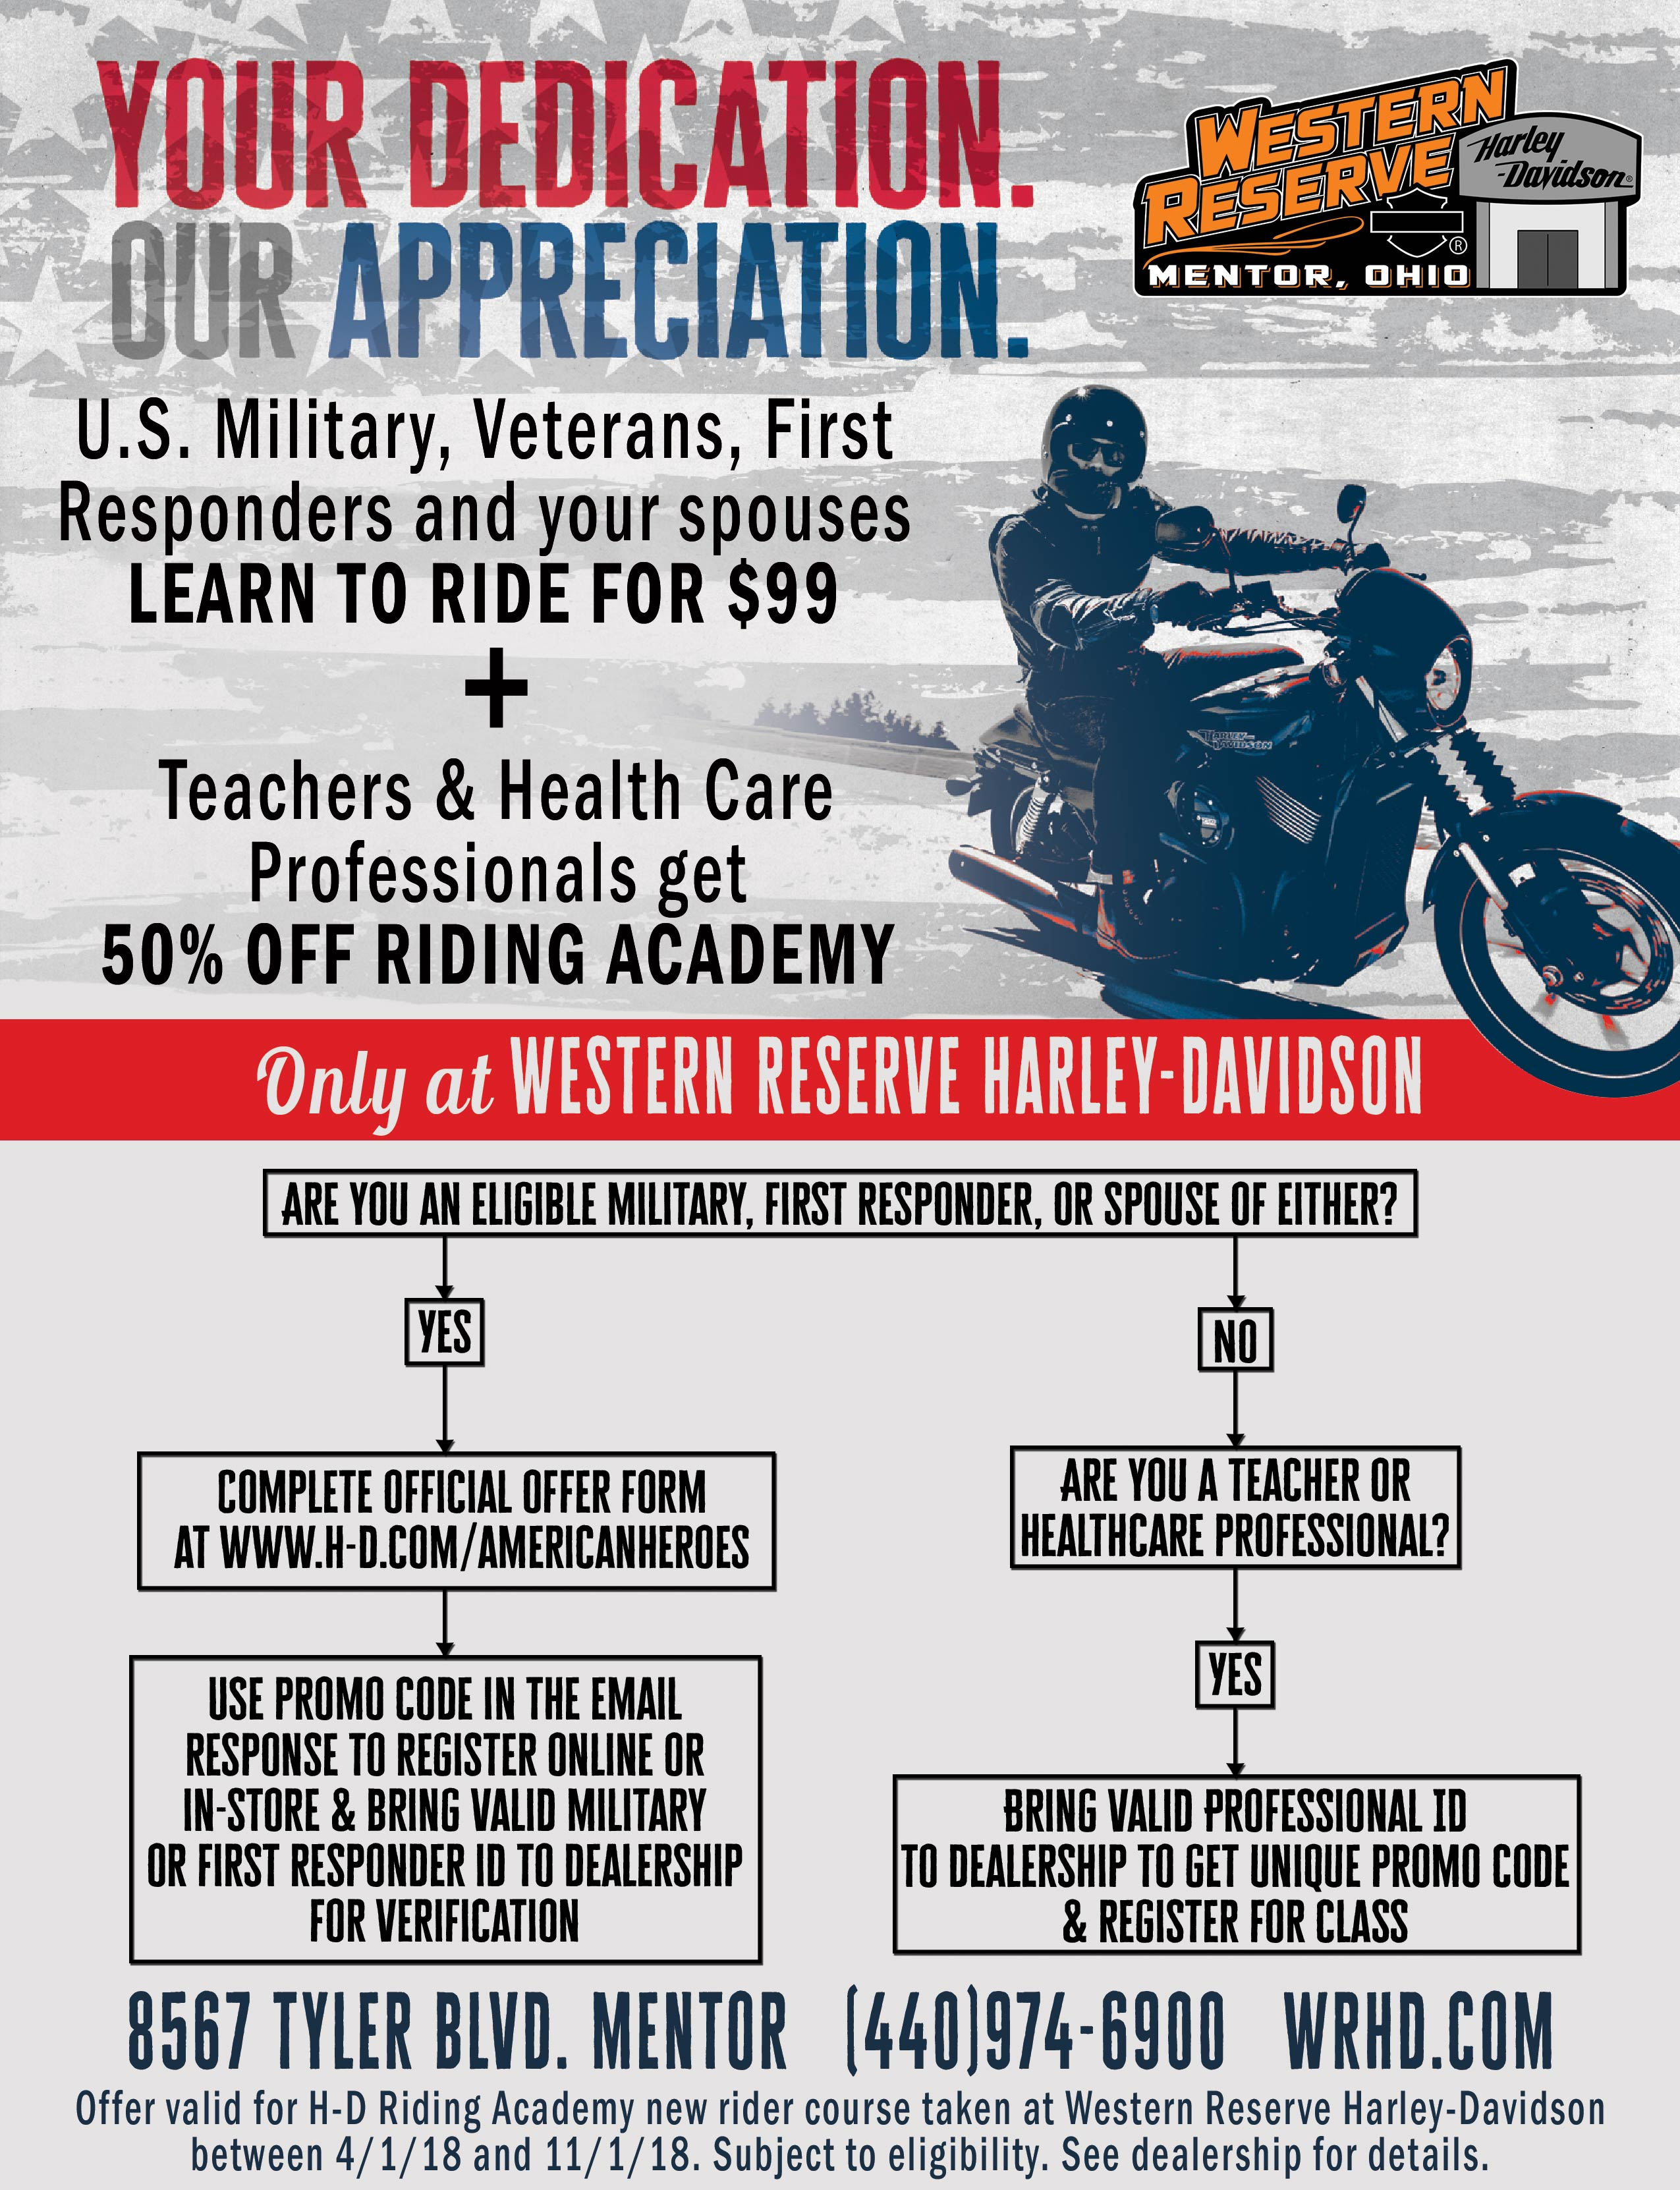 Riding Academy For Western Reserve Harley Davidson